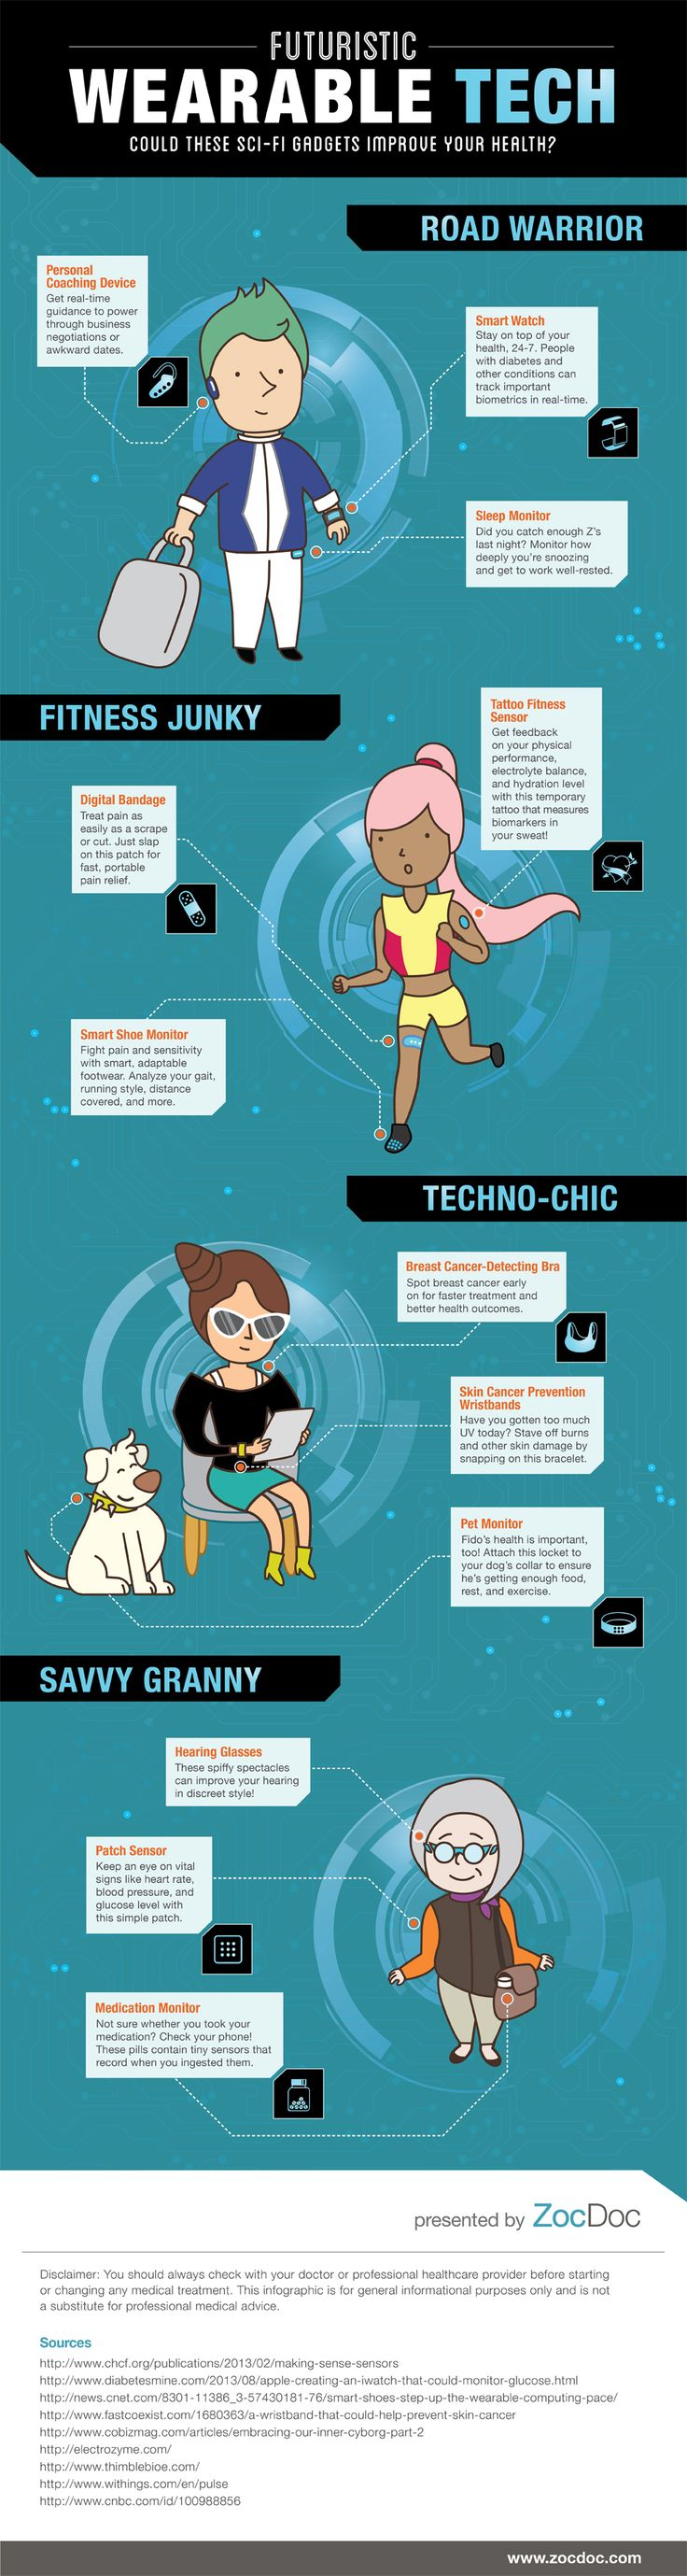 Futuristic Wearable Tech: Could These Sci-fi Gadgets Improve Your Health?  [by ZocDoc -- via #tipsographic]. More at tipsographic.com